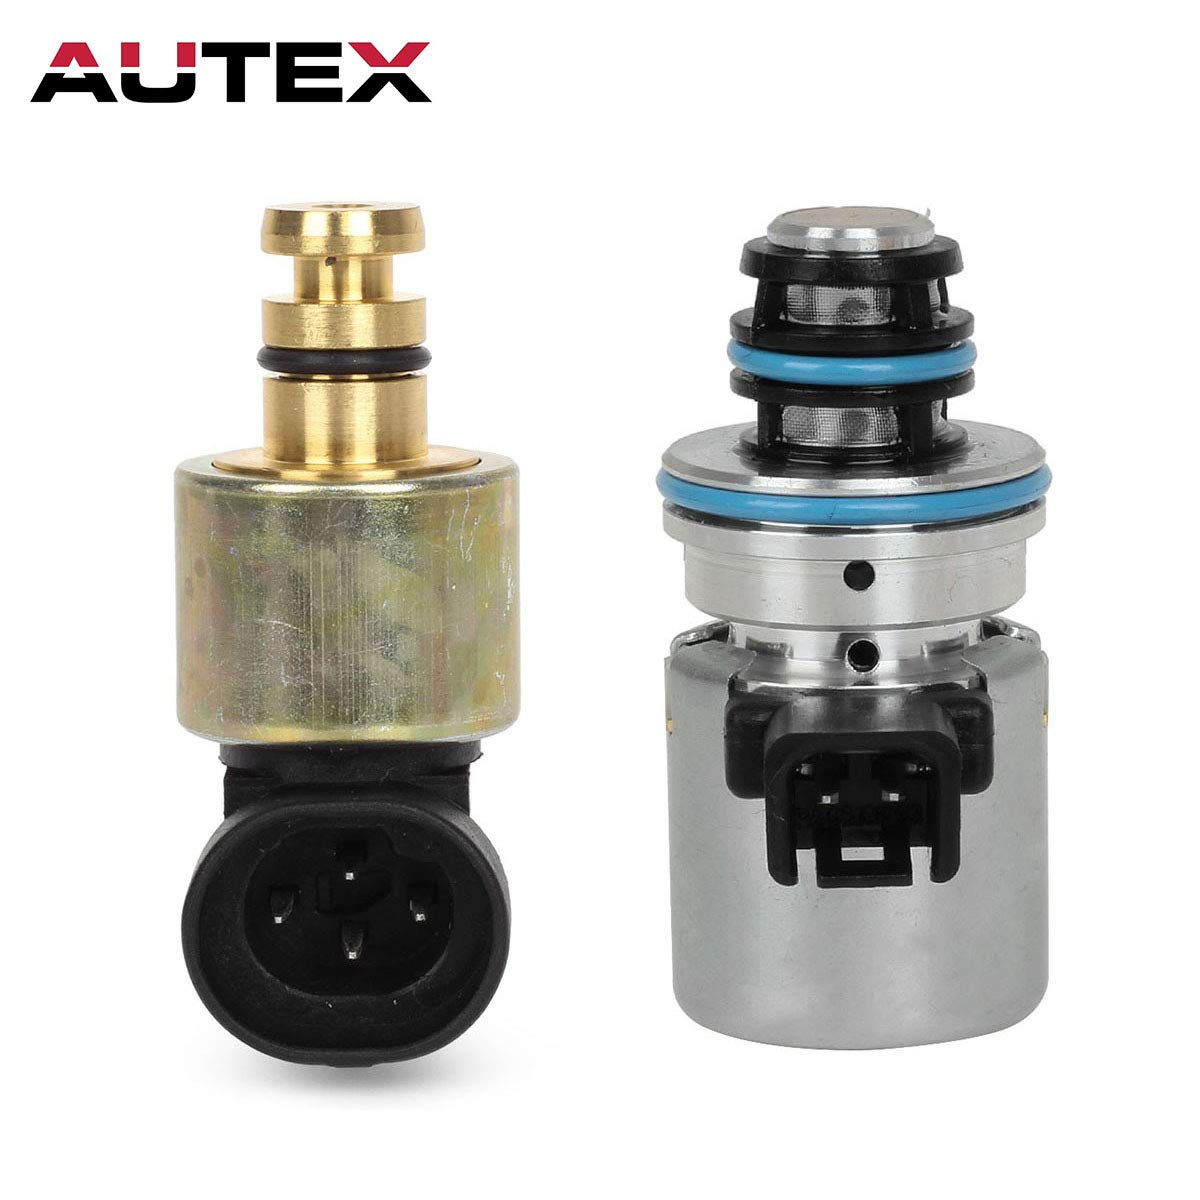 AUTEX Transmission Pressure Sensor Governor Solenoid Kit A500 A518 42RE 44RE 46RE 47RE Compatible With DODGE Dakota Ram 1500 2500 3500 1996-1999/B1500 B2500 1996-1998/Jeep Grand Cherokee 1993-1999 by AUTEX